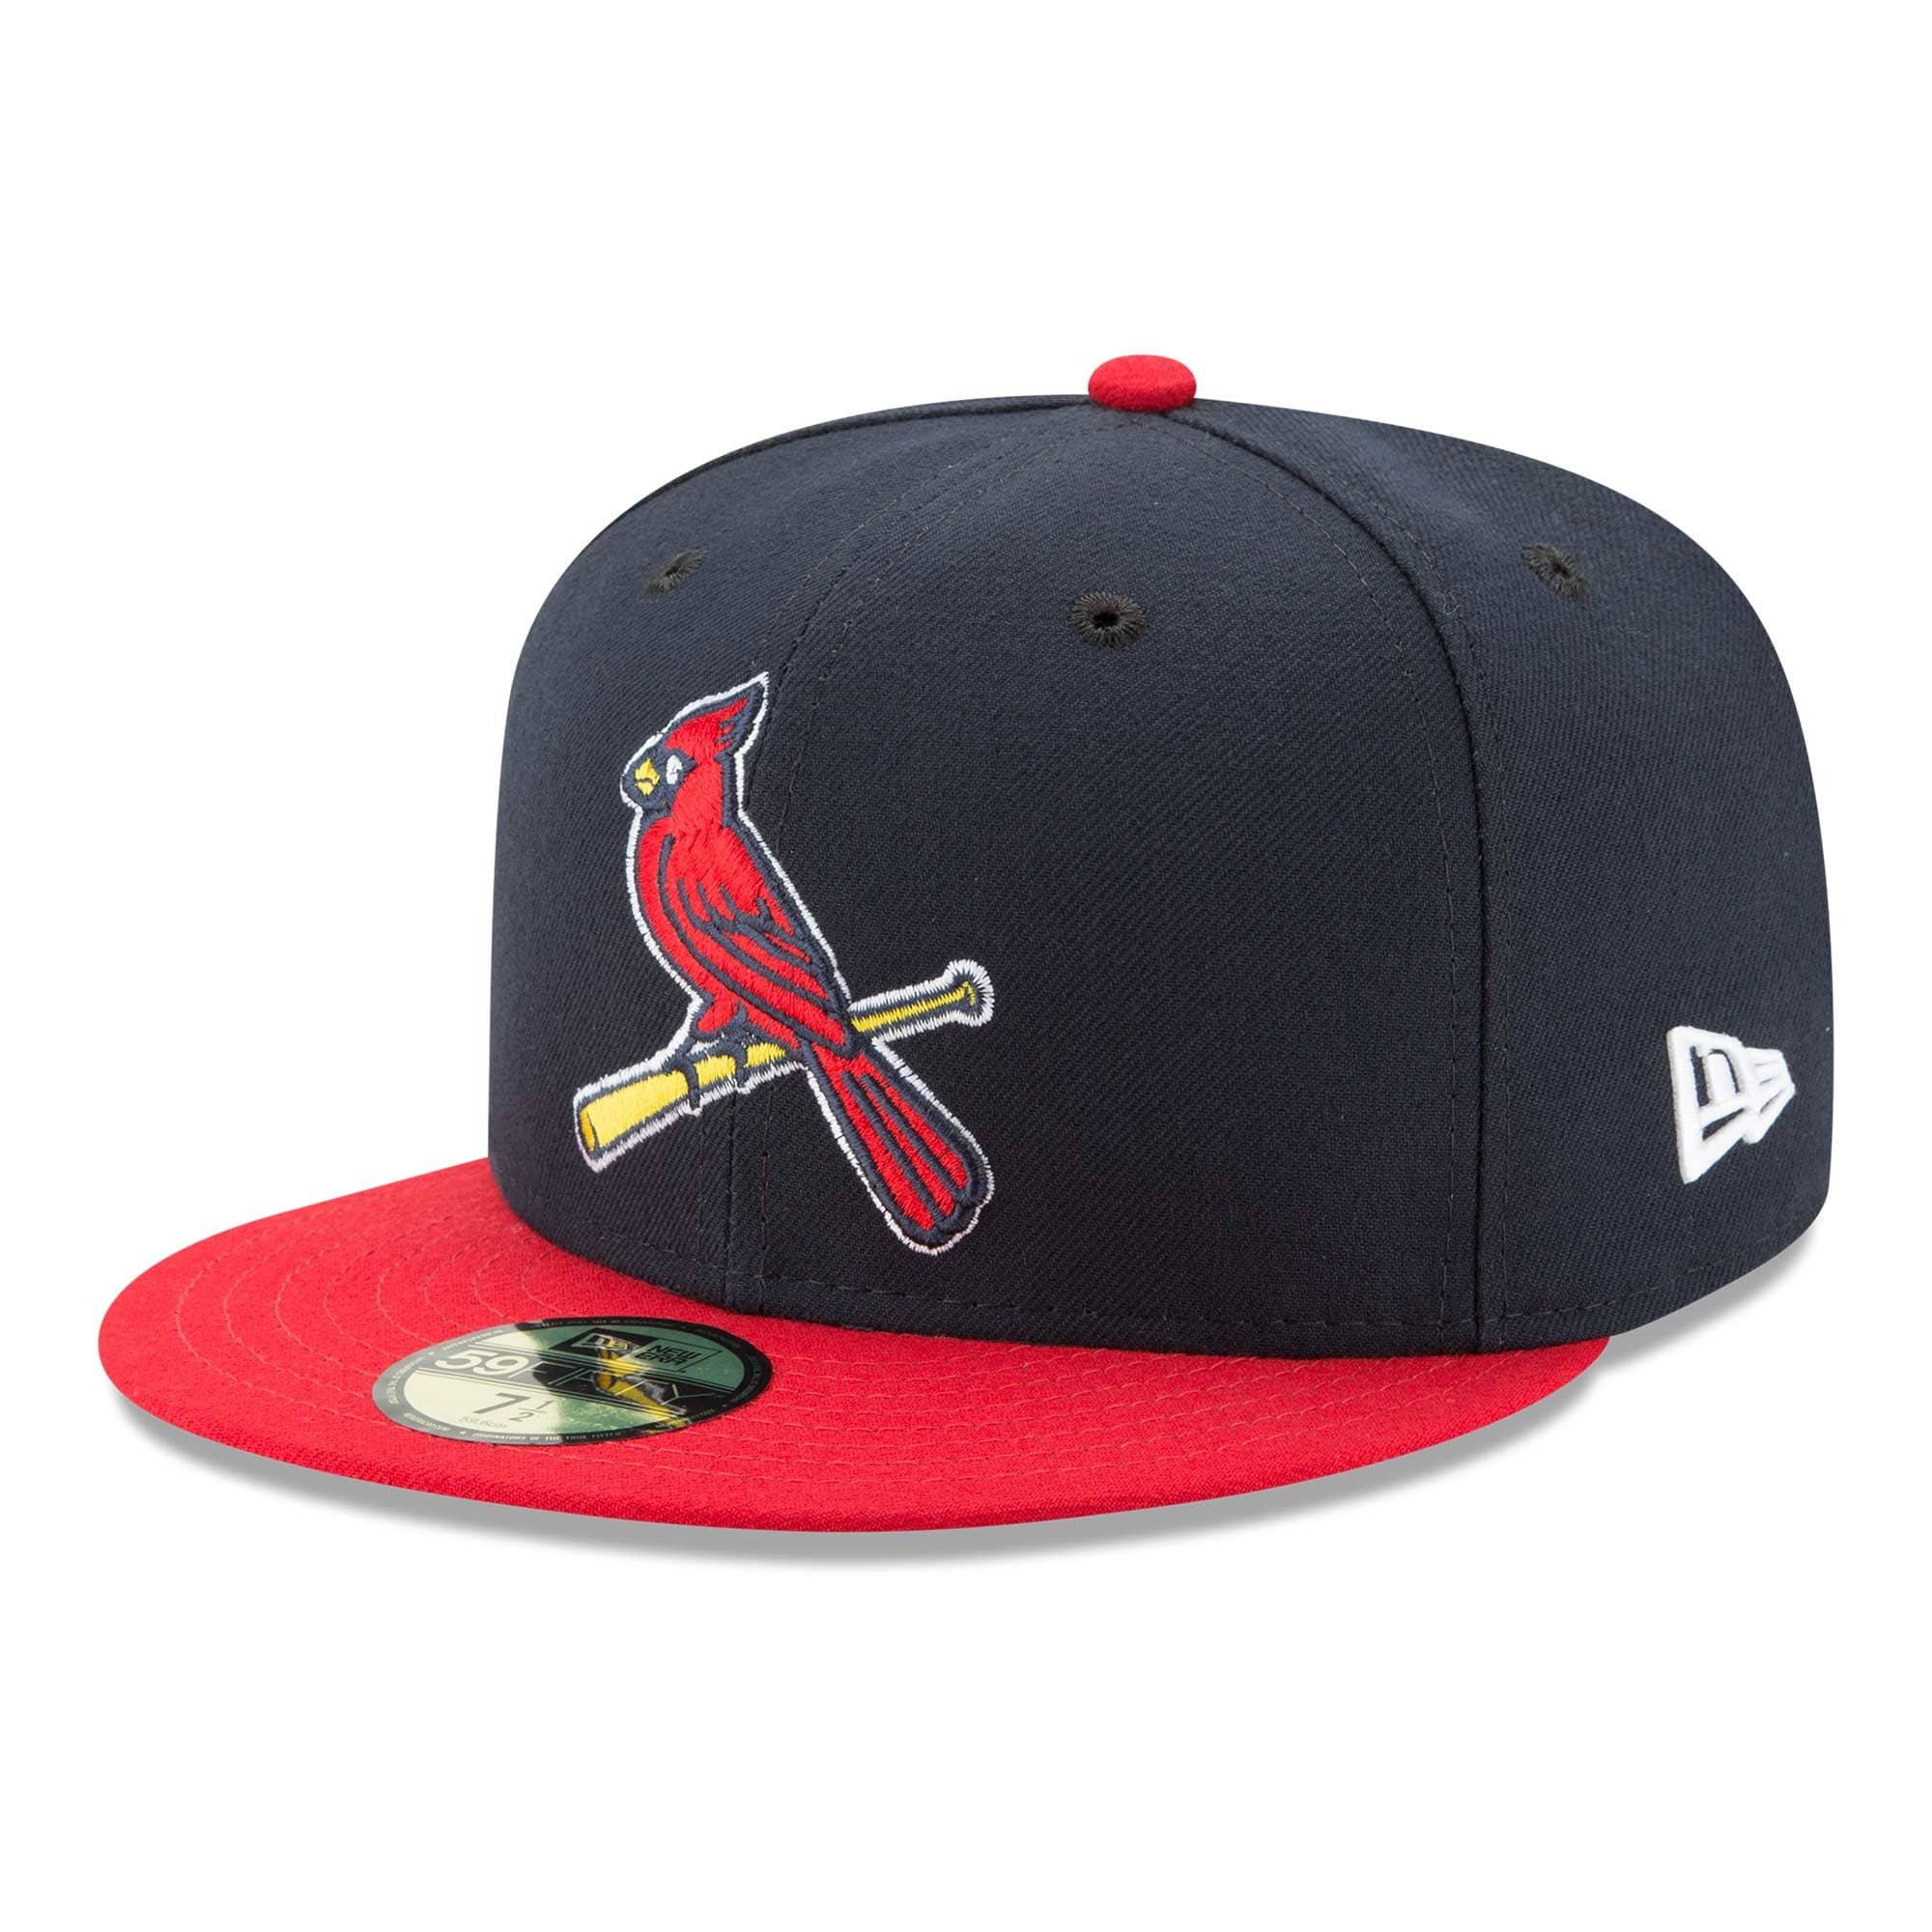 online retailer a9499 8bfd1 New Era St. Louis Cardinals Authentic 59FIFTY Fitted MLB Cap ALT2   TAASS. com